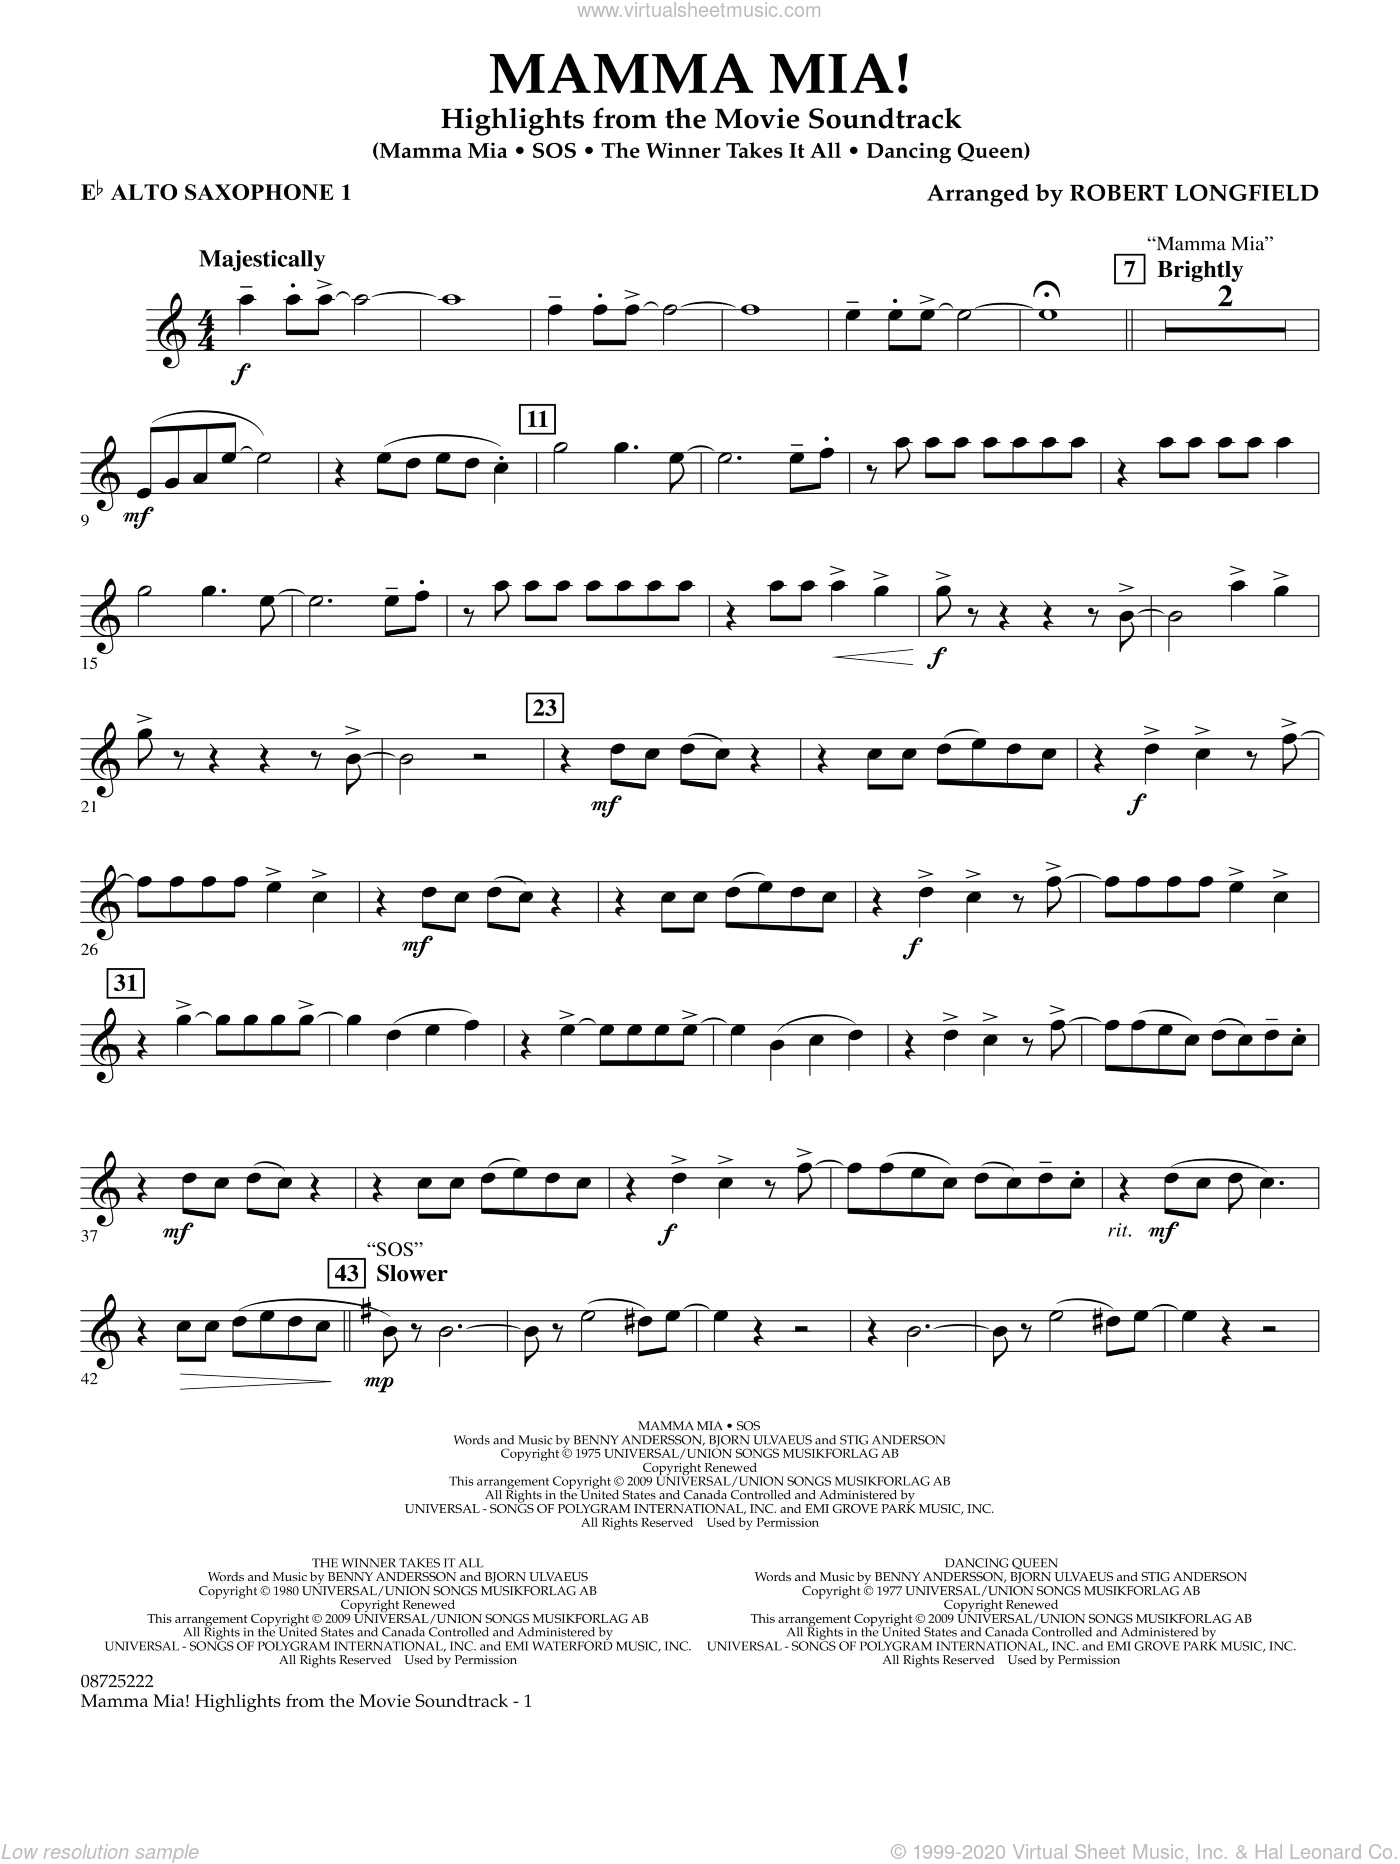 Mamma Mia!, highlights from the movie soundtrack sheet music for concert band (Eb alto saxophone 1) by Robert Longfield